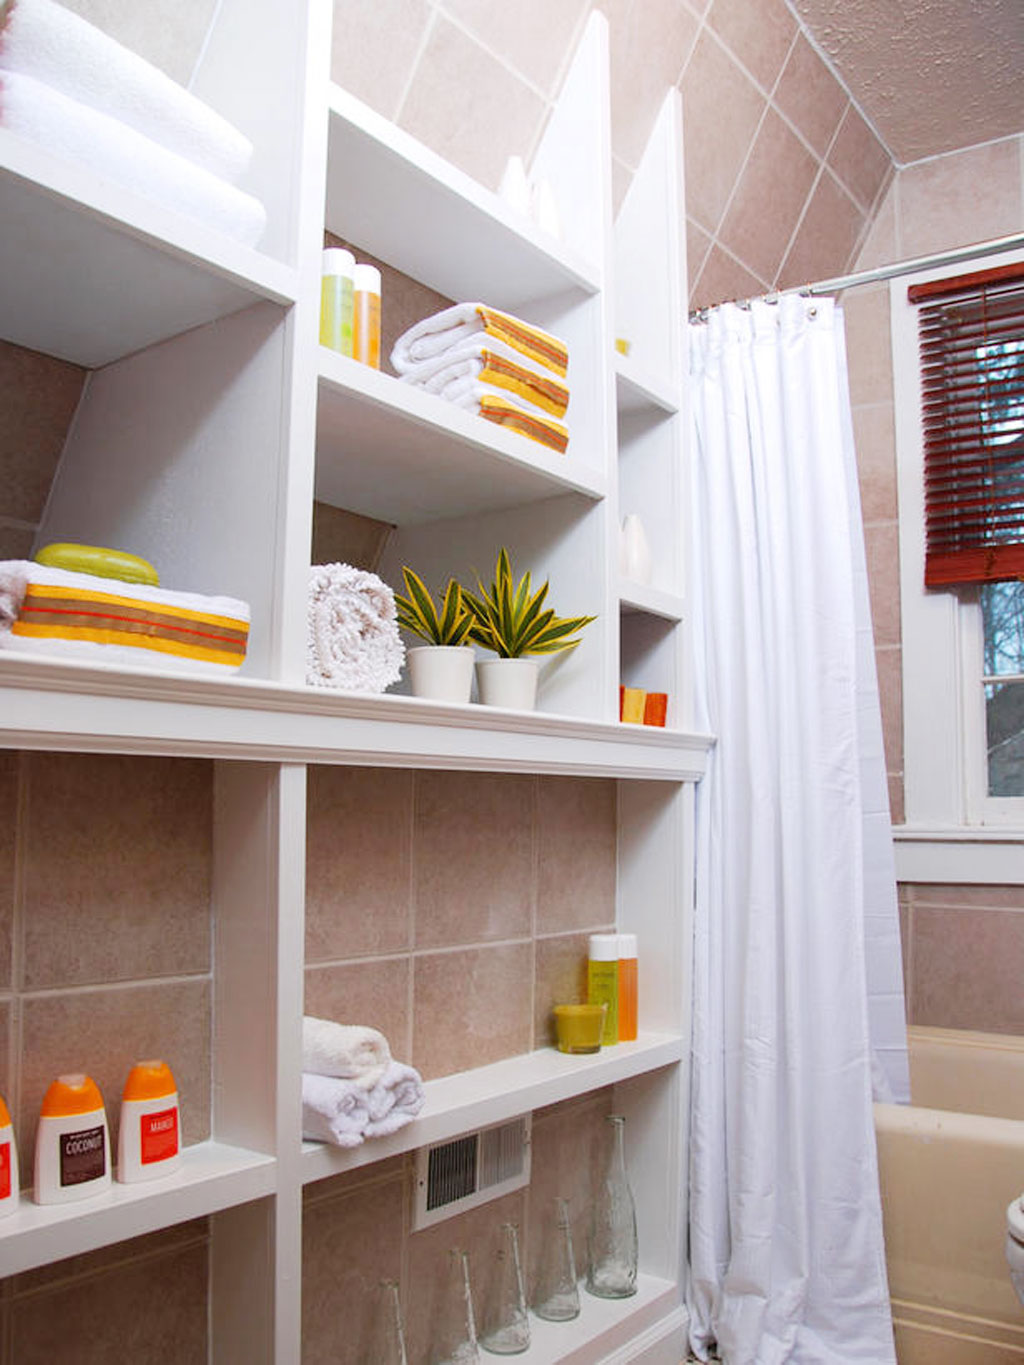 6 Photos Of The Efficient Bathroom Storage Ideas For Small Spaces